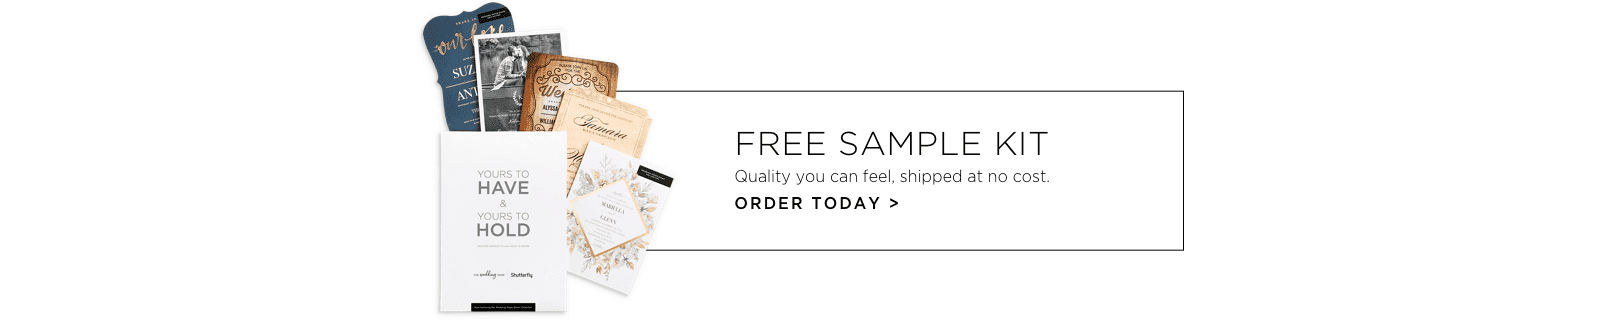 free wedding sample kit